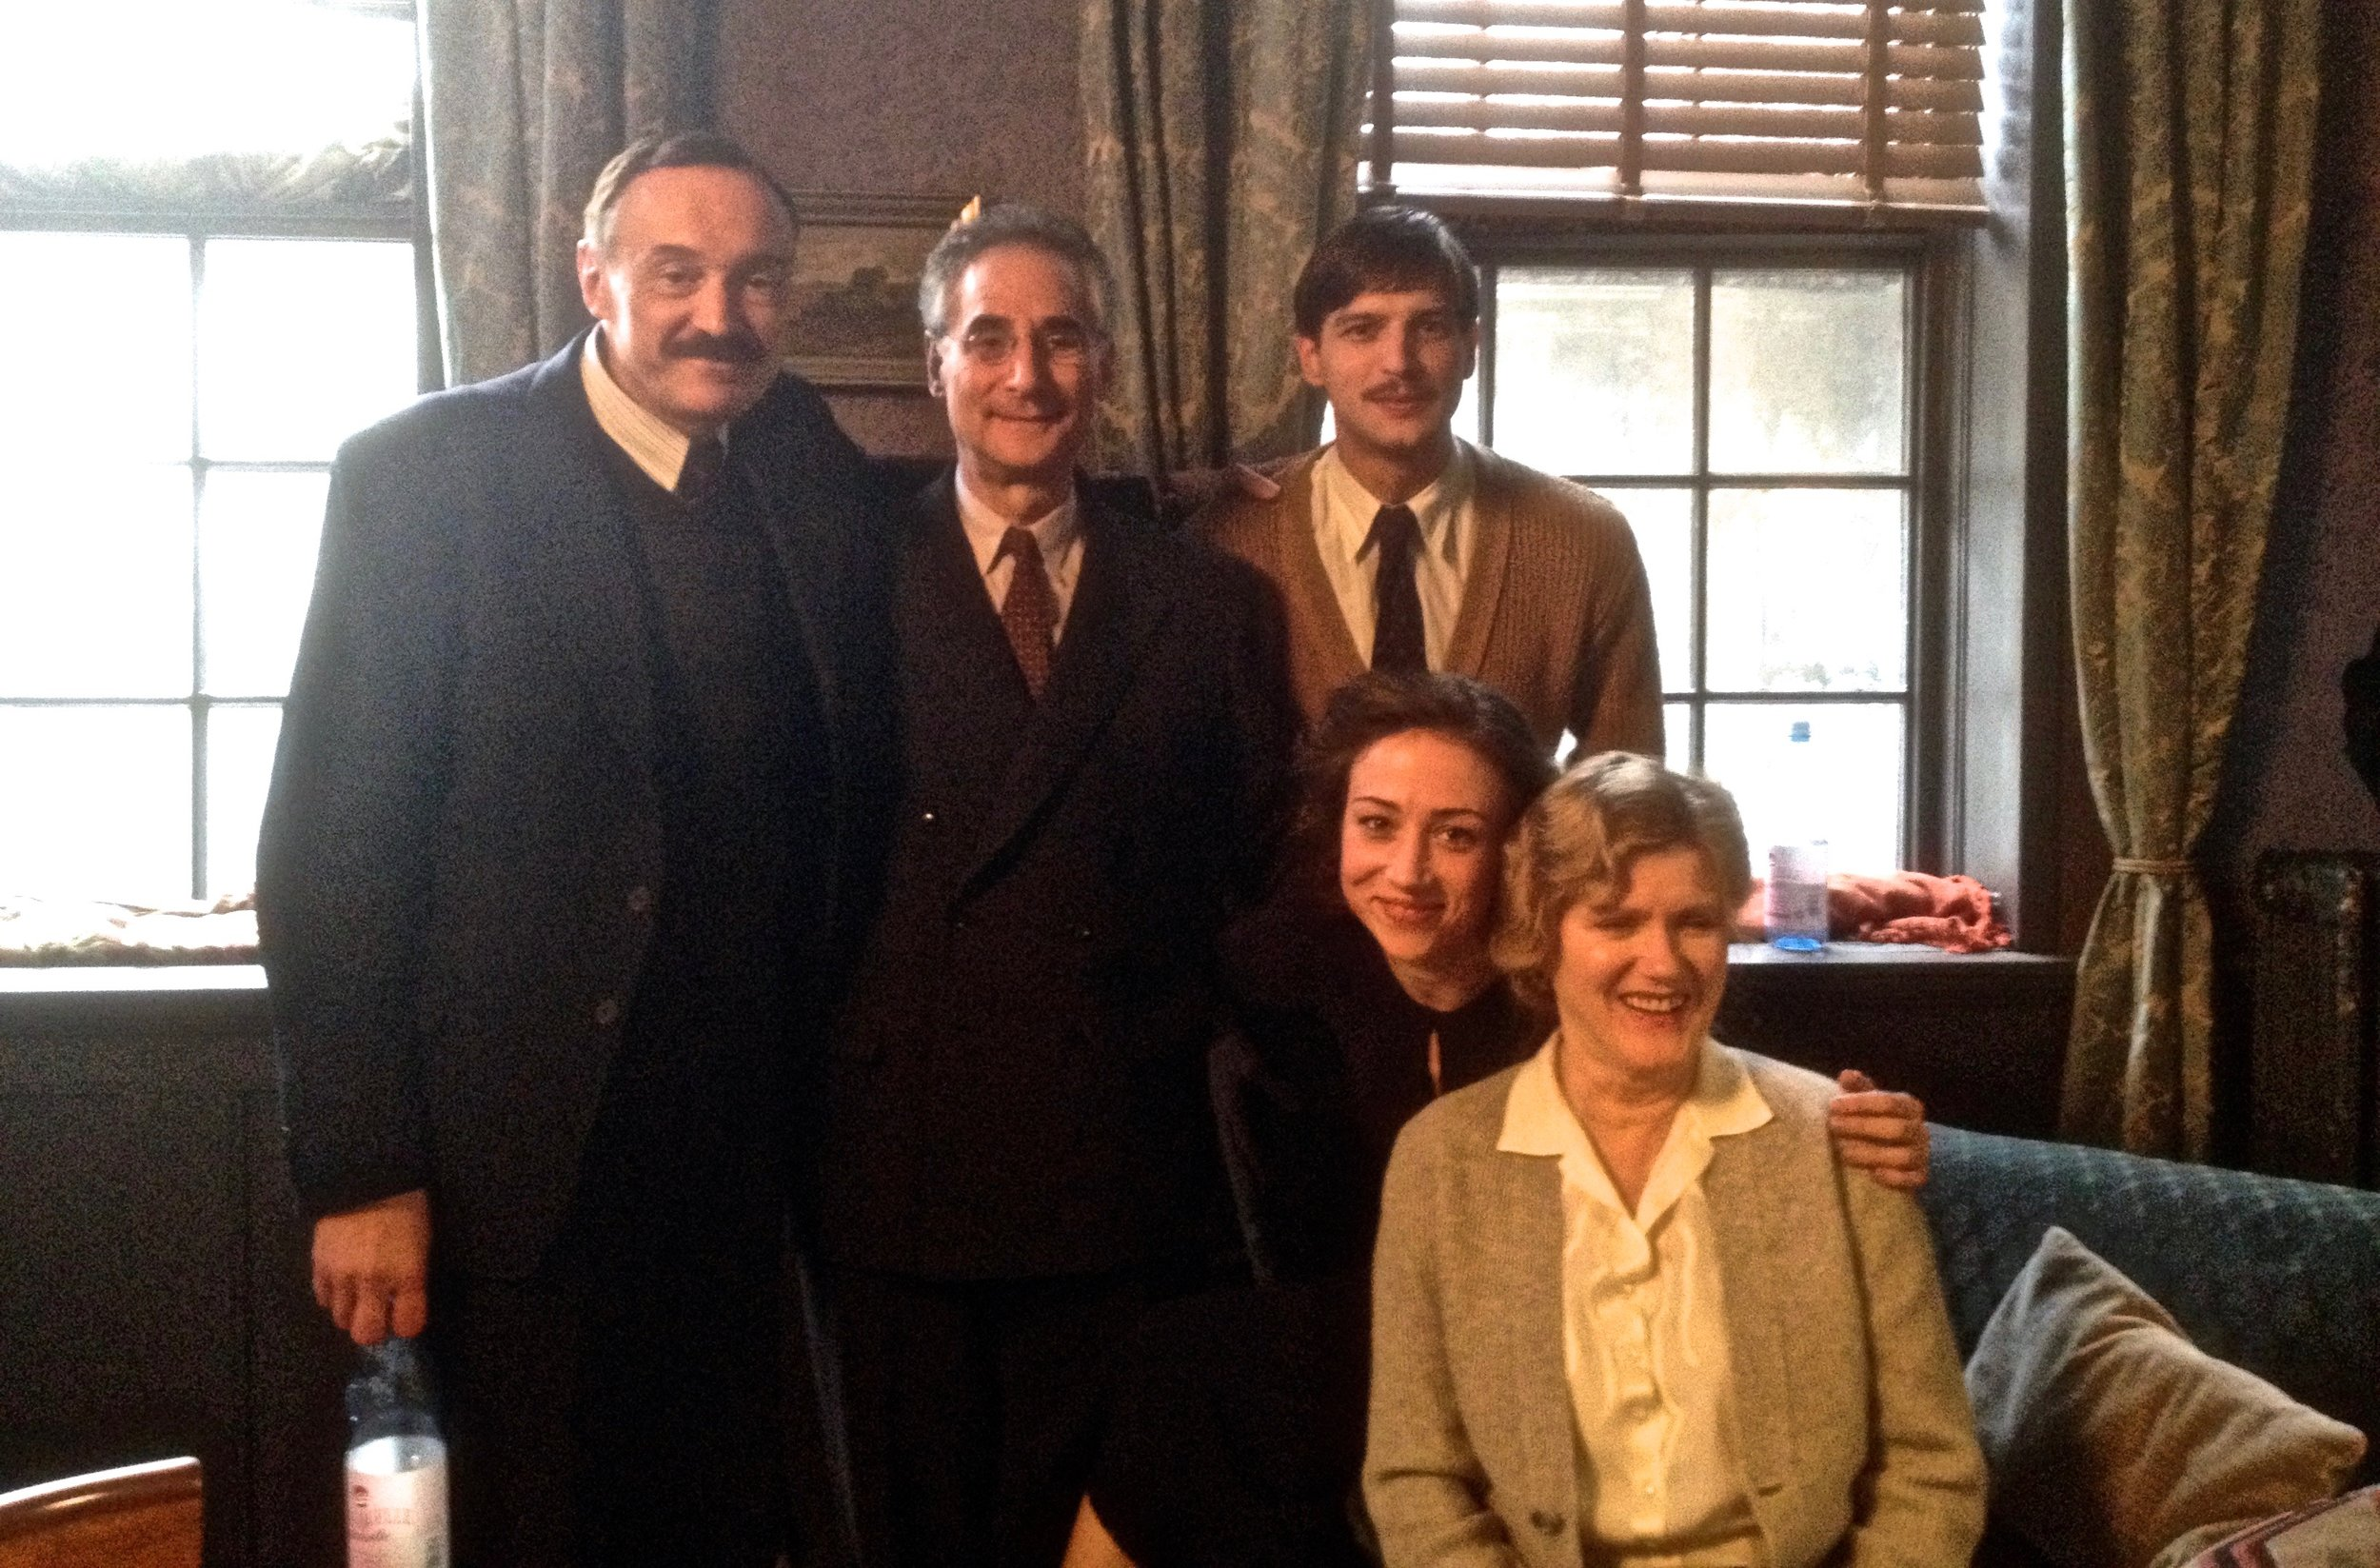 With the cast and director from STEFAN ZWEIG; AFAREWELL TO EUROPE made in Germany.